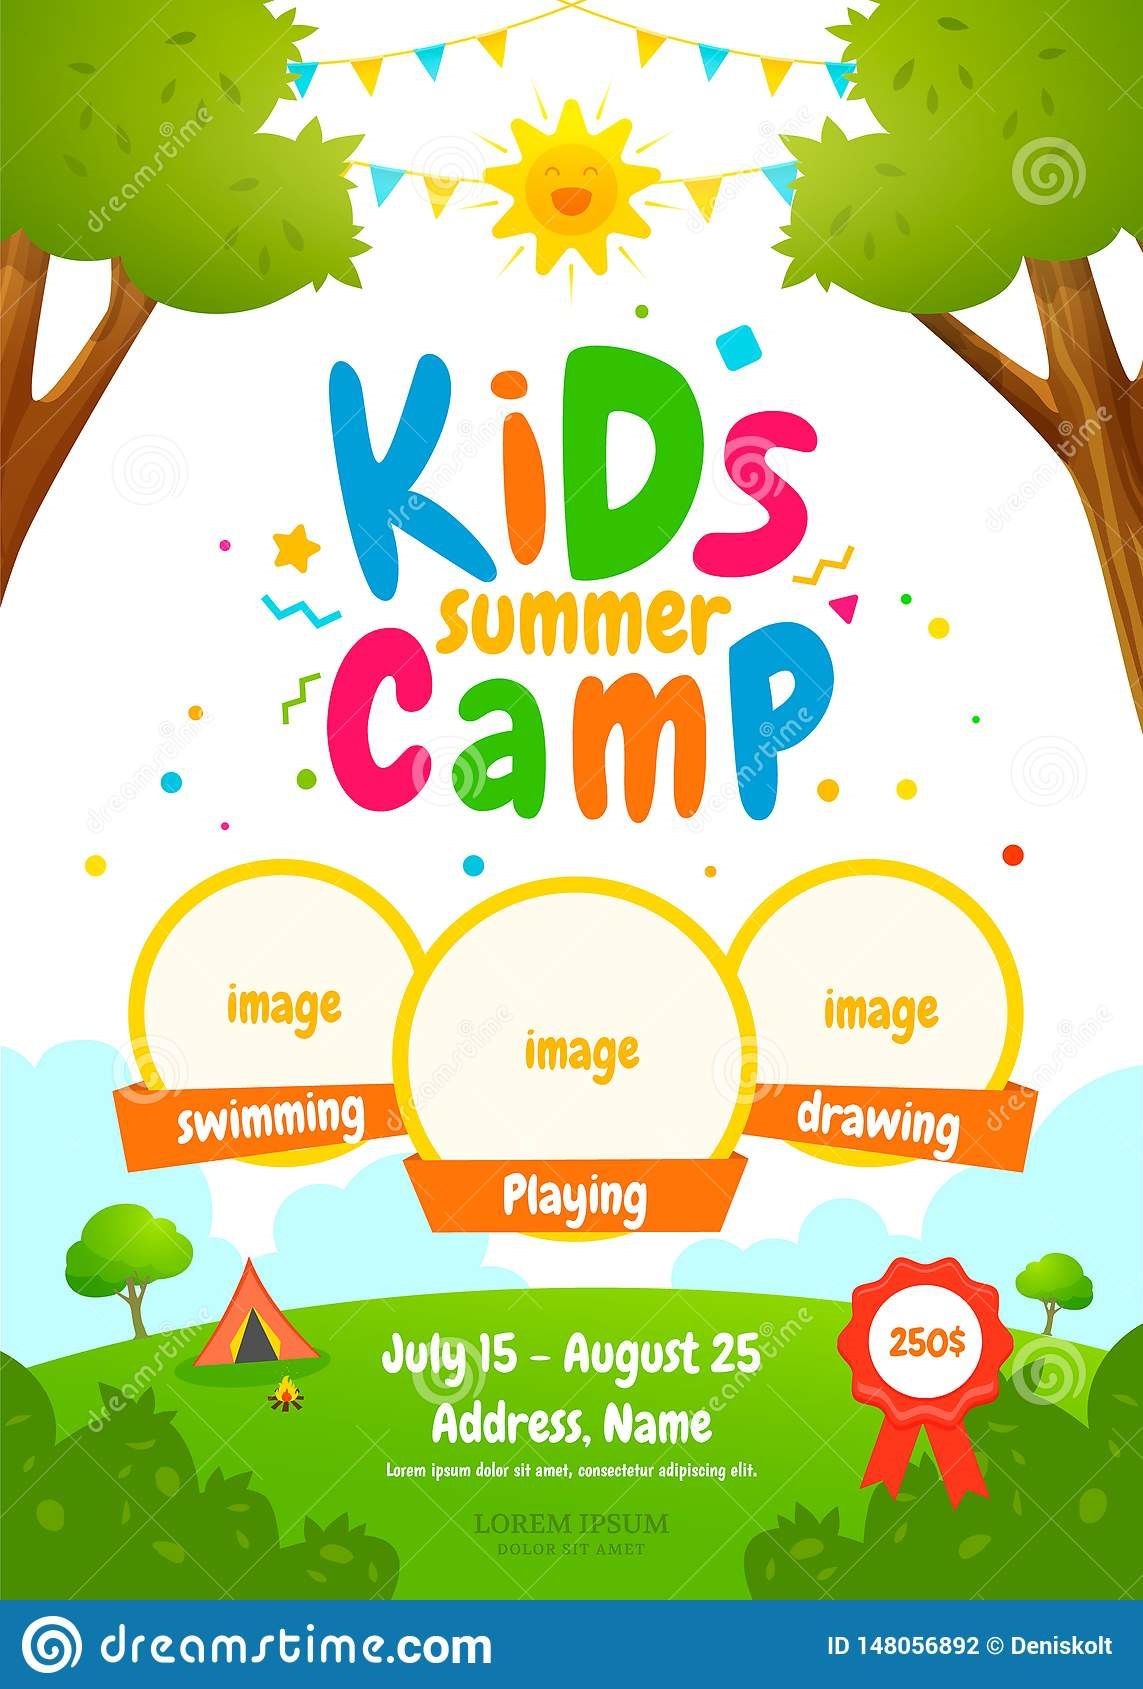 006 Outstanding Summer Camp Flyer Template Concept  Day Microsoft Word BackgroundFull